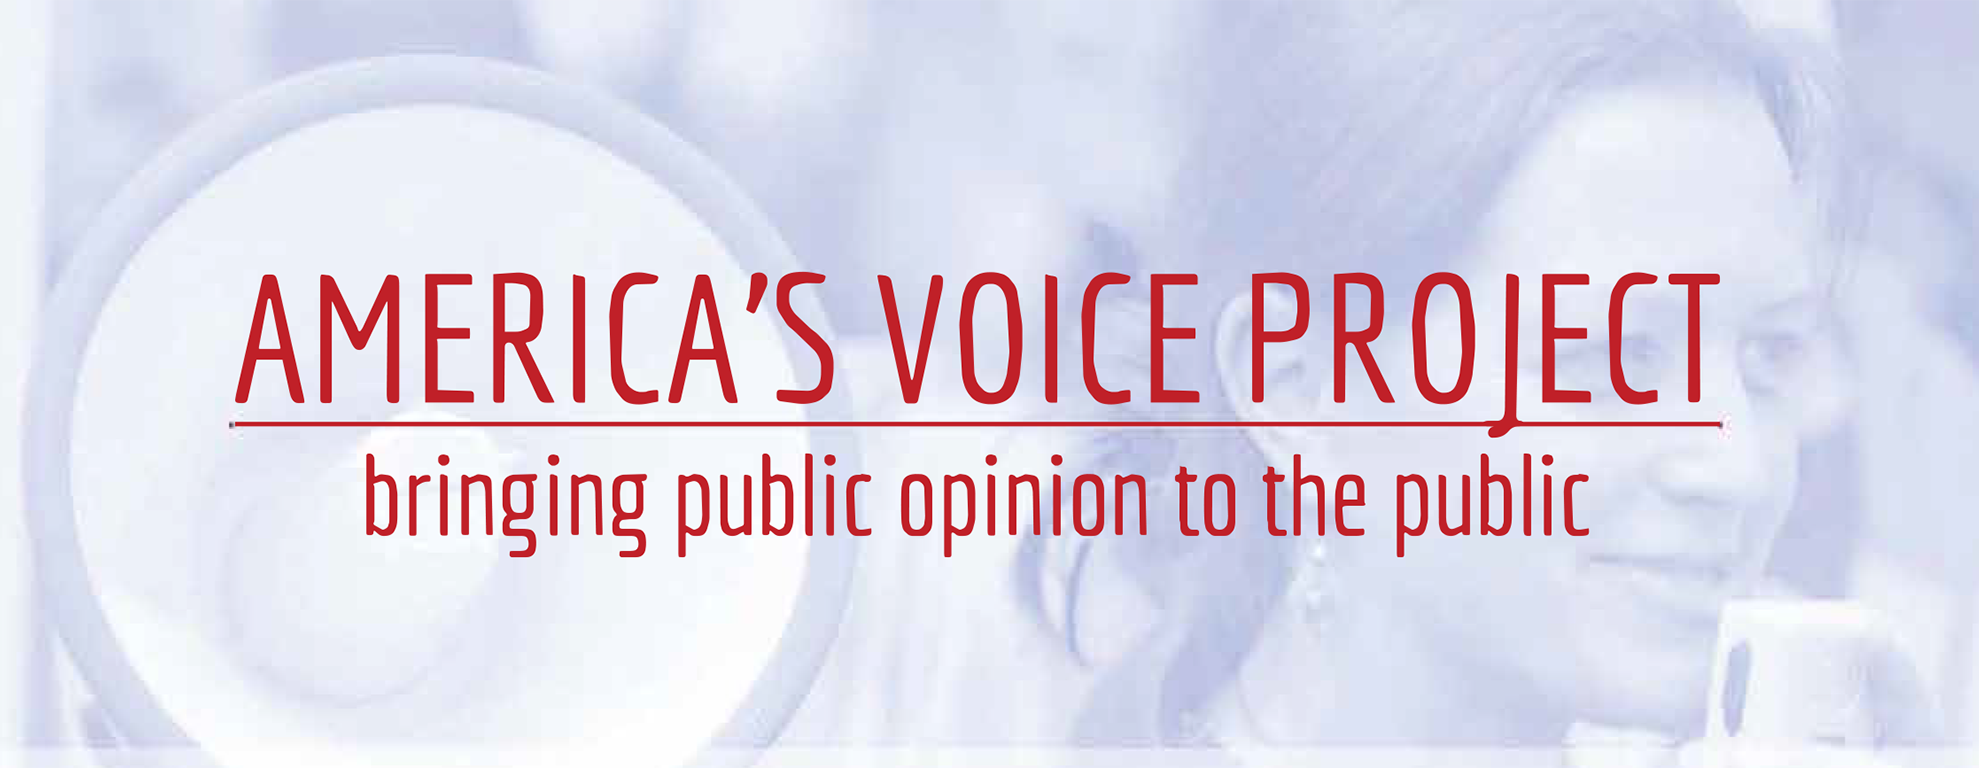 America's Voice Project